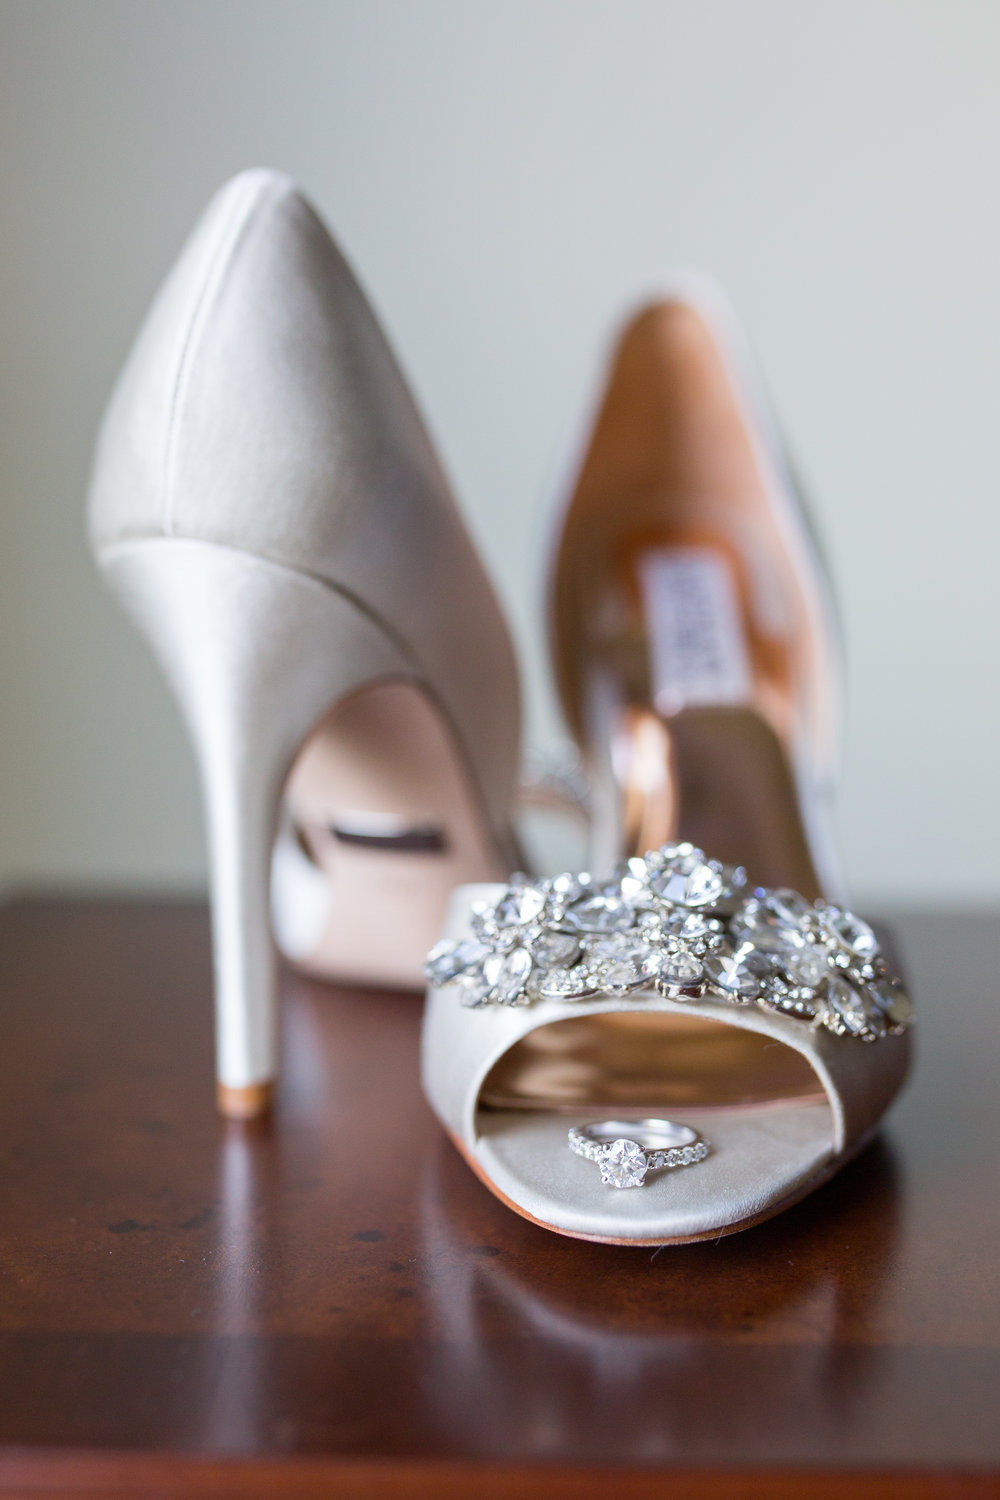 Wedding Shoes Wedding Ring Engagement Ring NJ Wedding Photography